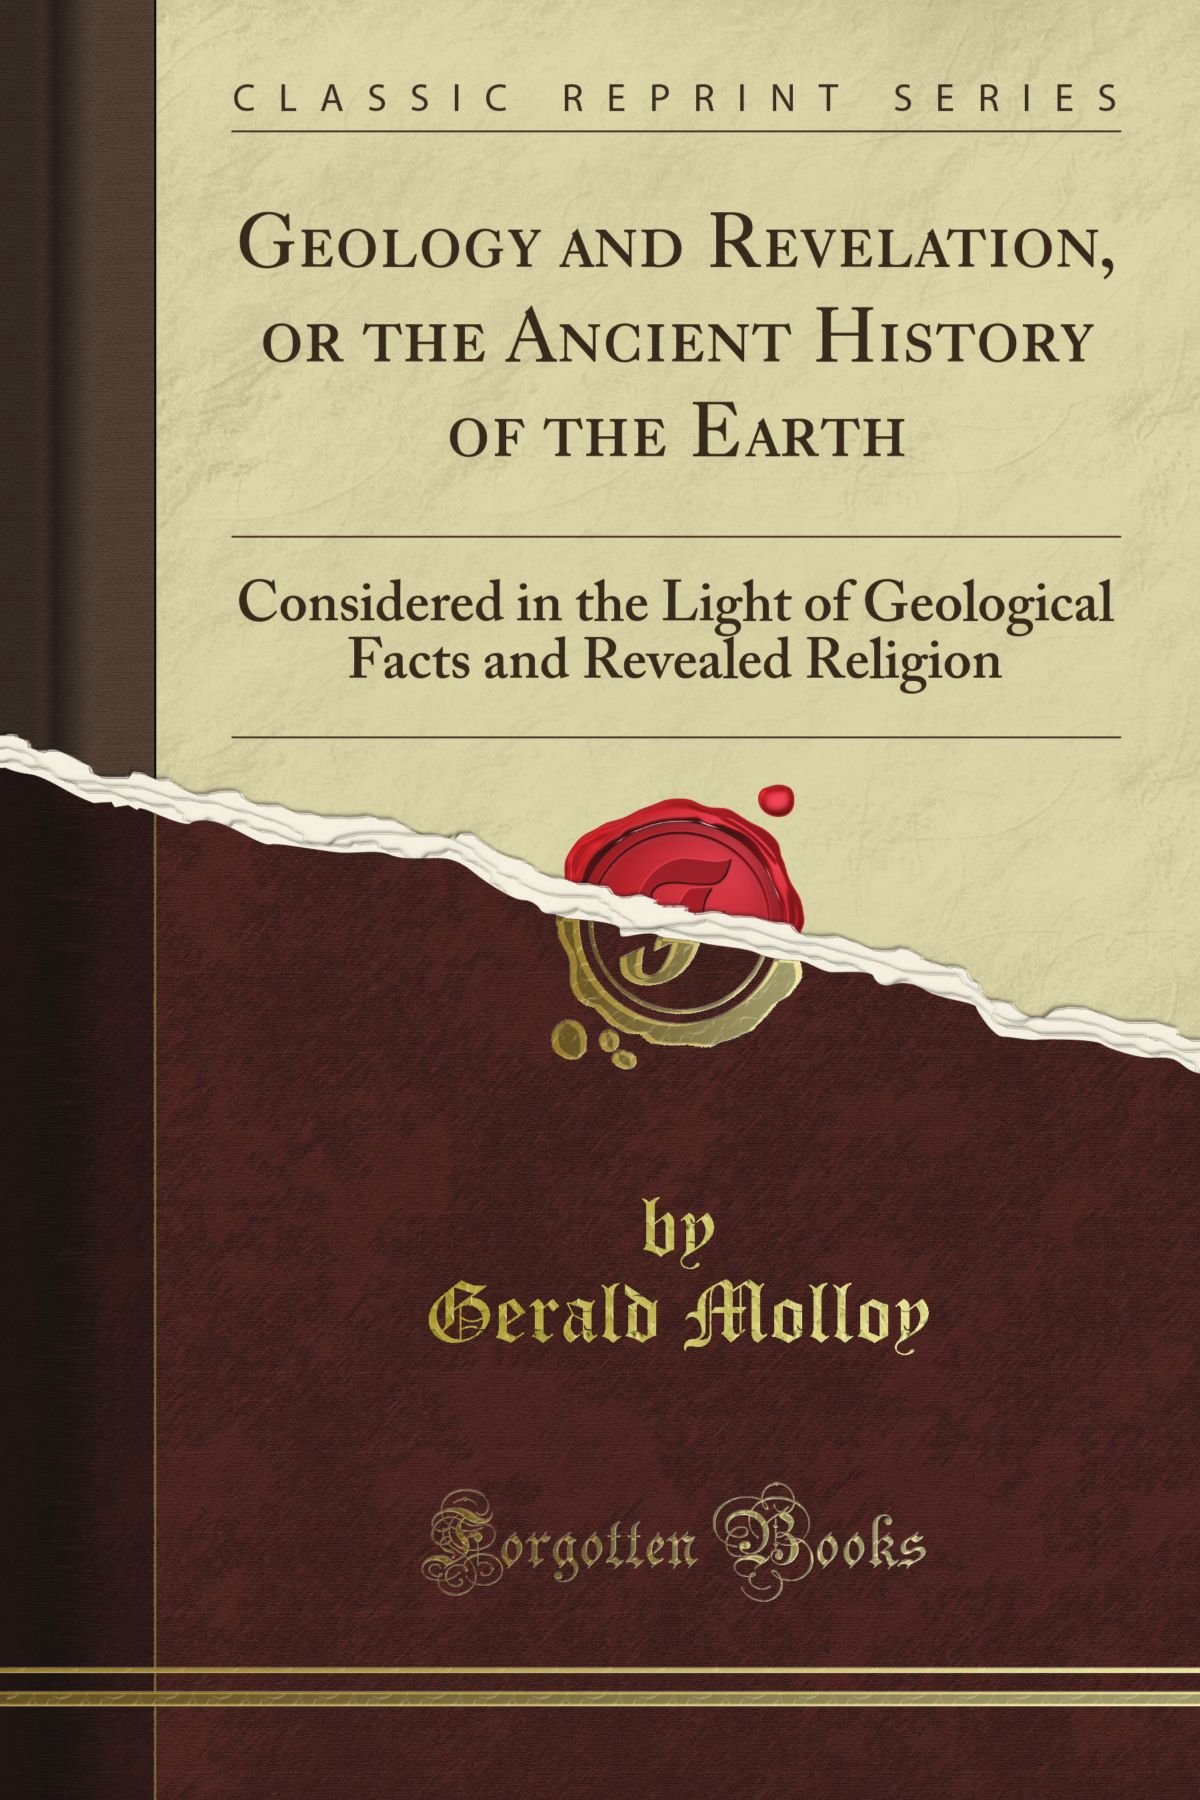 Download Geology and Revelation, or the Ancient History of the Earth: Considered in the Light of Geological Facts and Revealed Religion (Classic Reprint) ebook